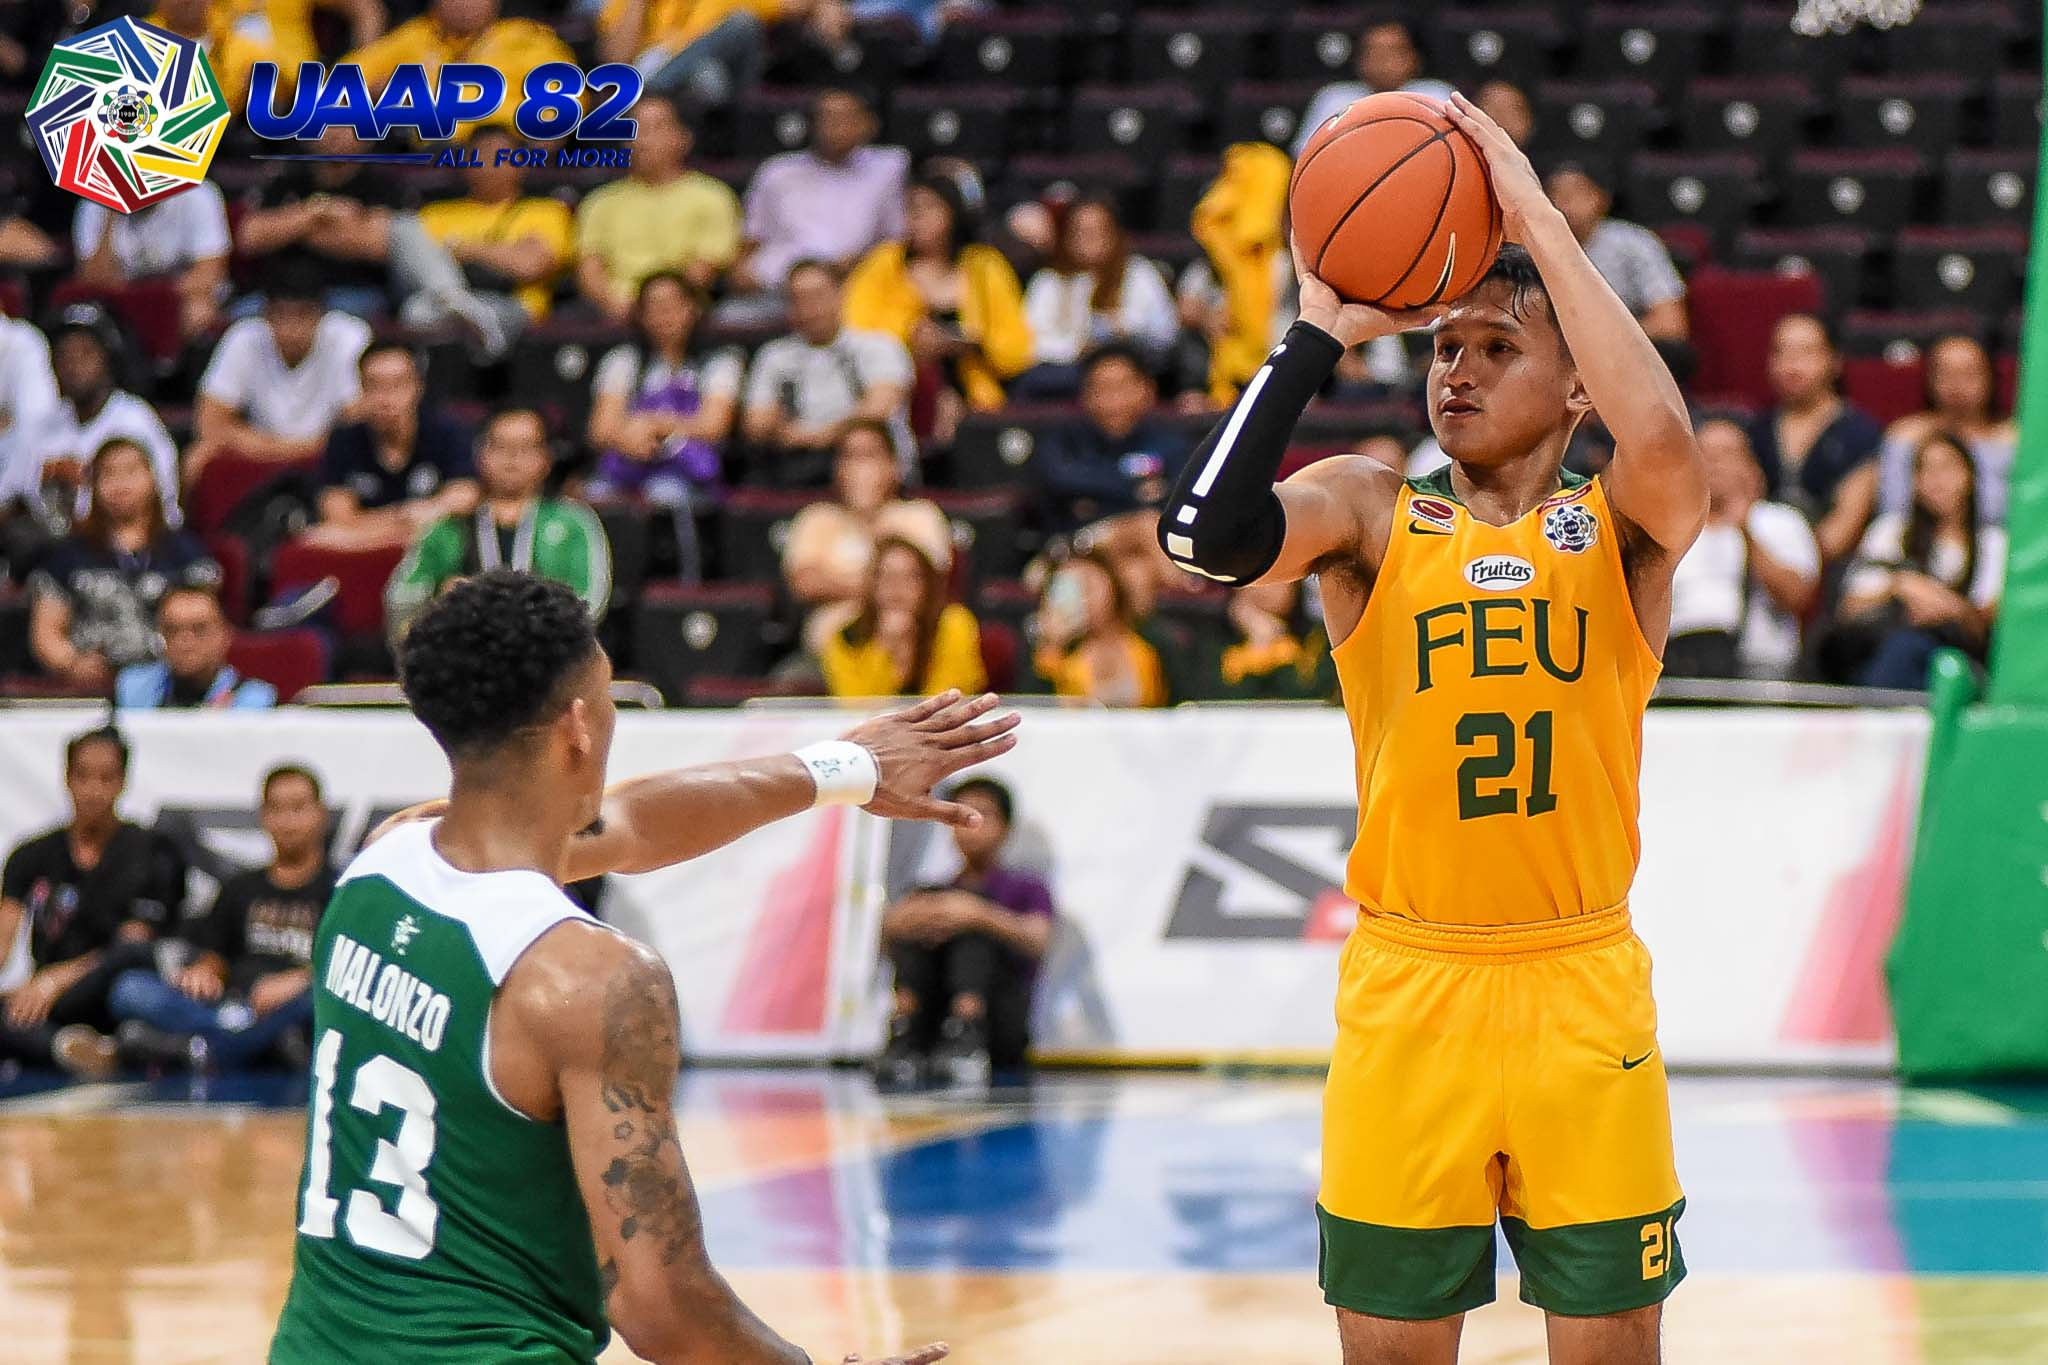 Tiebreaker Times Comboy holds off La Salle as FEU Tamaraws even slate Basketball DLSU FEU News UAAP  Wendelino Comboy UAAP Season 82 Men's Basketball UAAP Season 82 Patrick Tchuente Olsen Racela Jamie Orme-Malonzo Jamie Orme Gian Nazario FEU Men's Basketball DLSU Men's Basketball Andrei Caracut